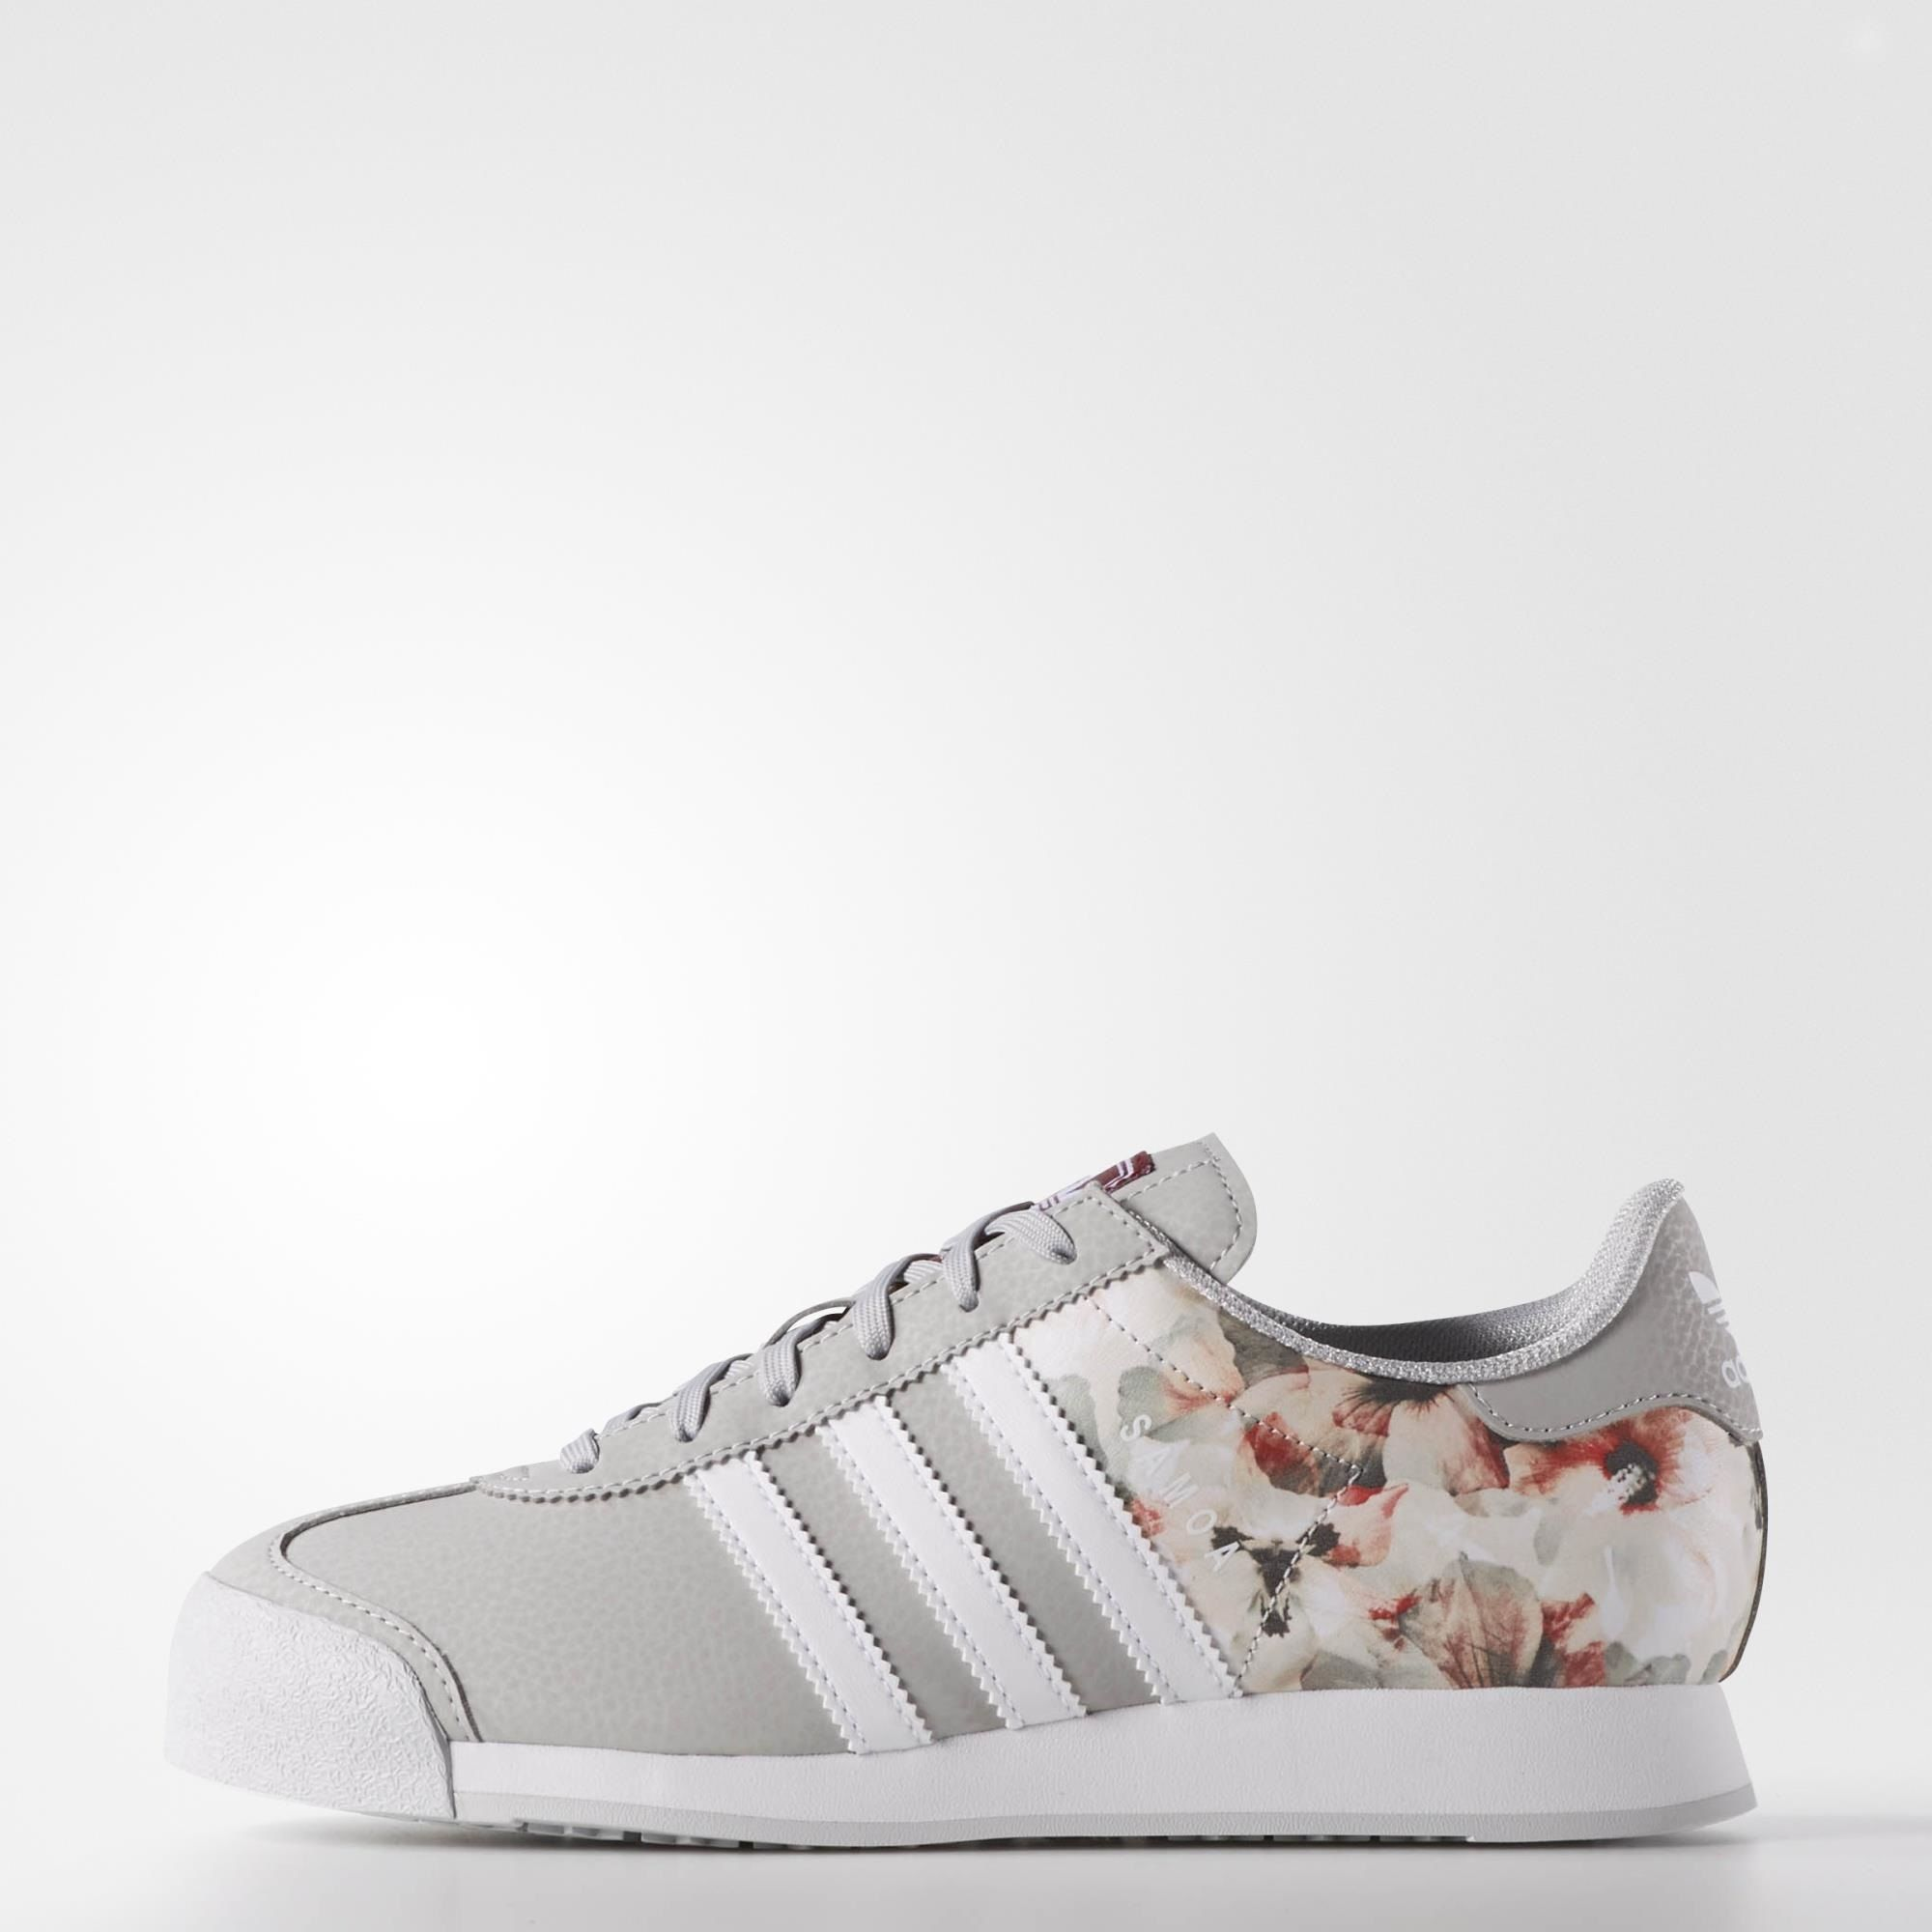 adidas samoa shoes women flowers